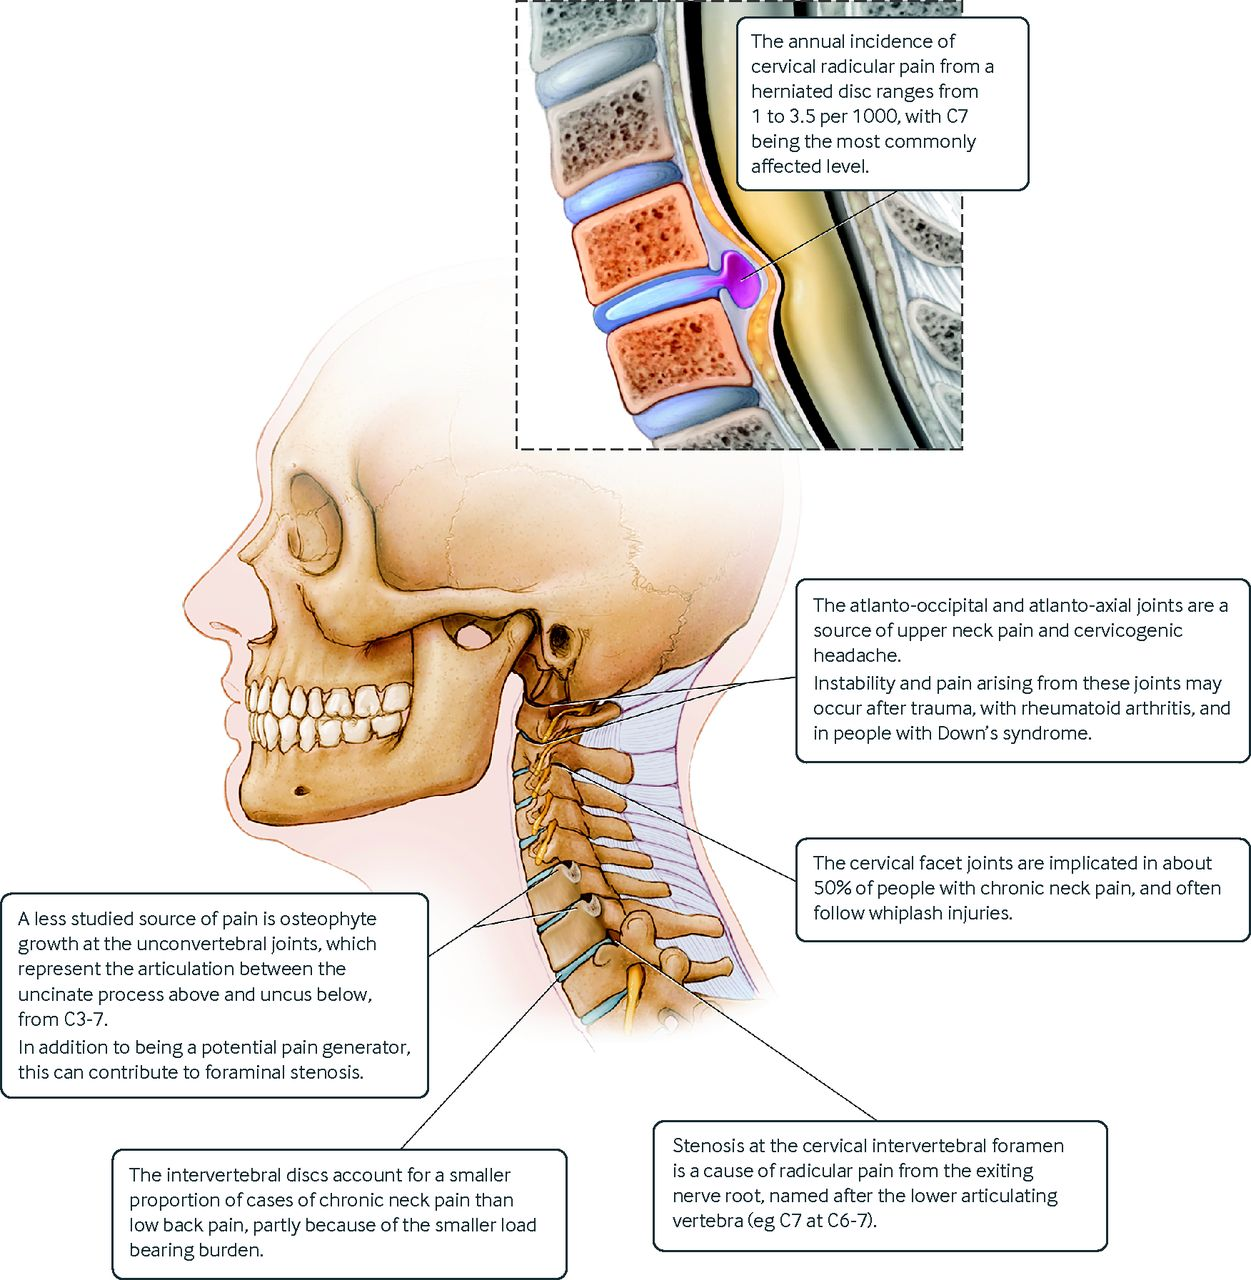 medium resolution of fig 6 sagittal view of cervical spine showing potential pain generators courtesy of frank corl mayo clinic